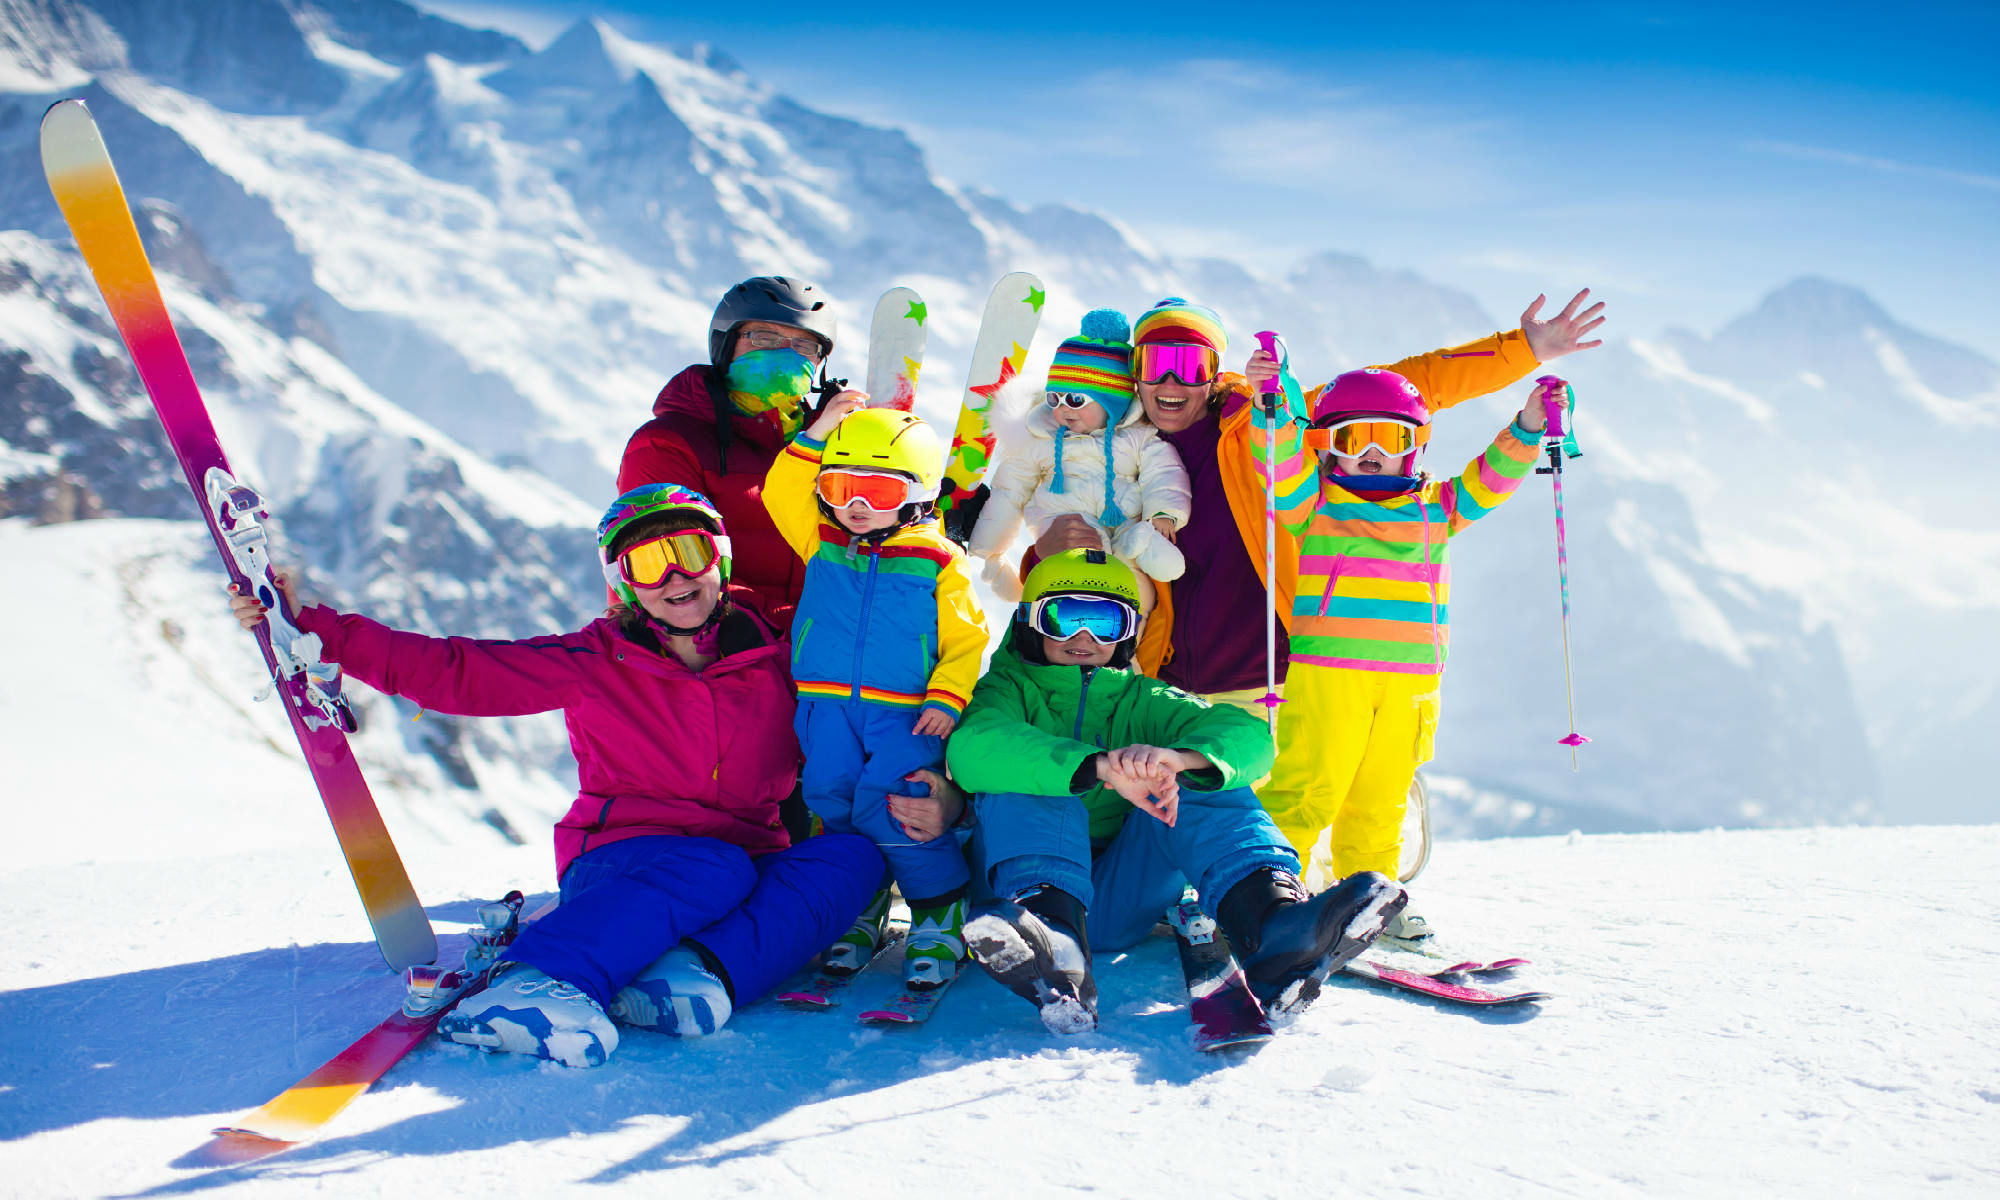 A family of skiers on a slope.